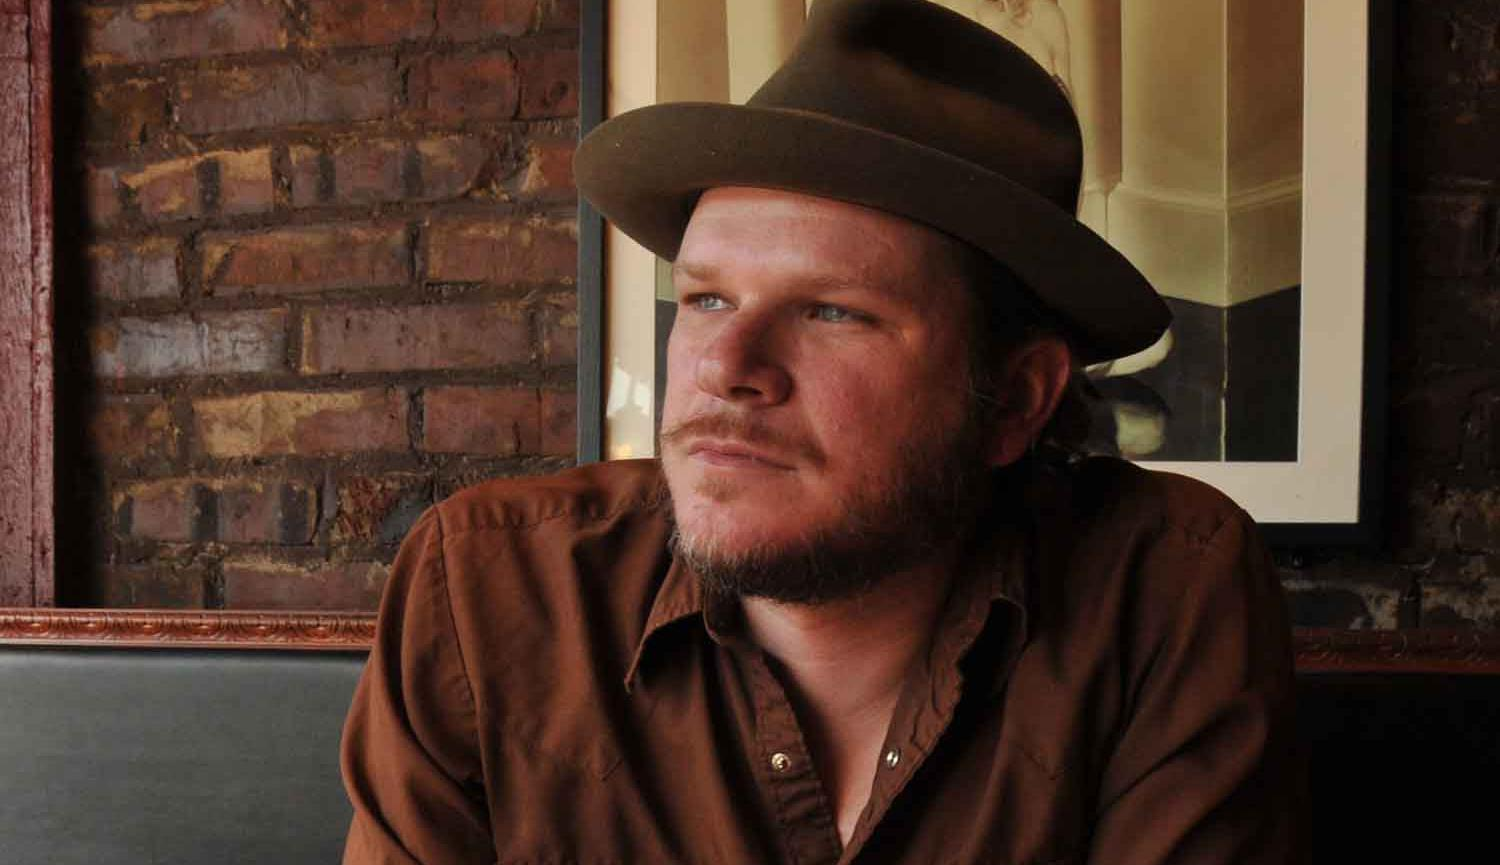 Image of Jason Eady sitting at table wearing hat